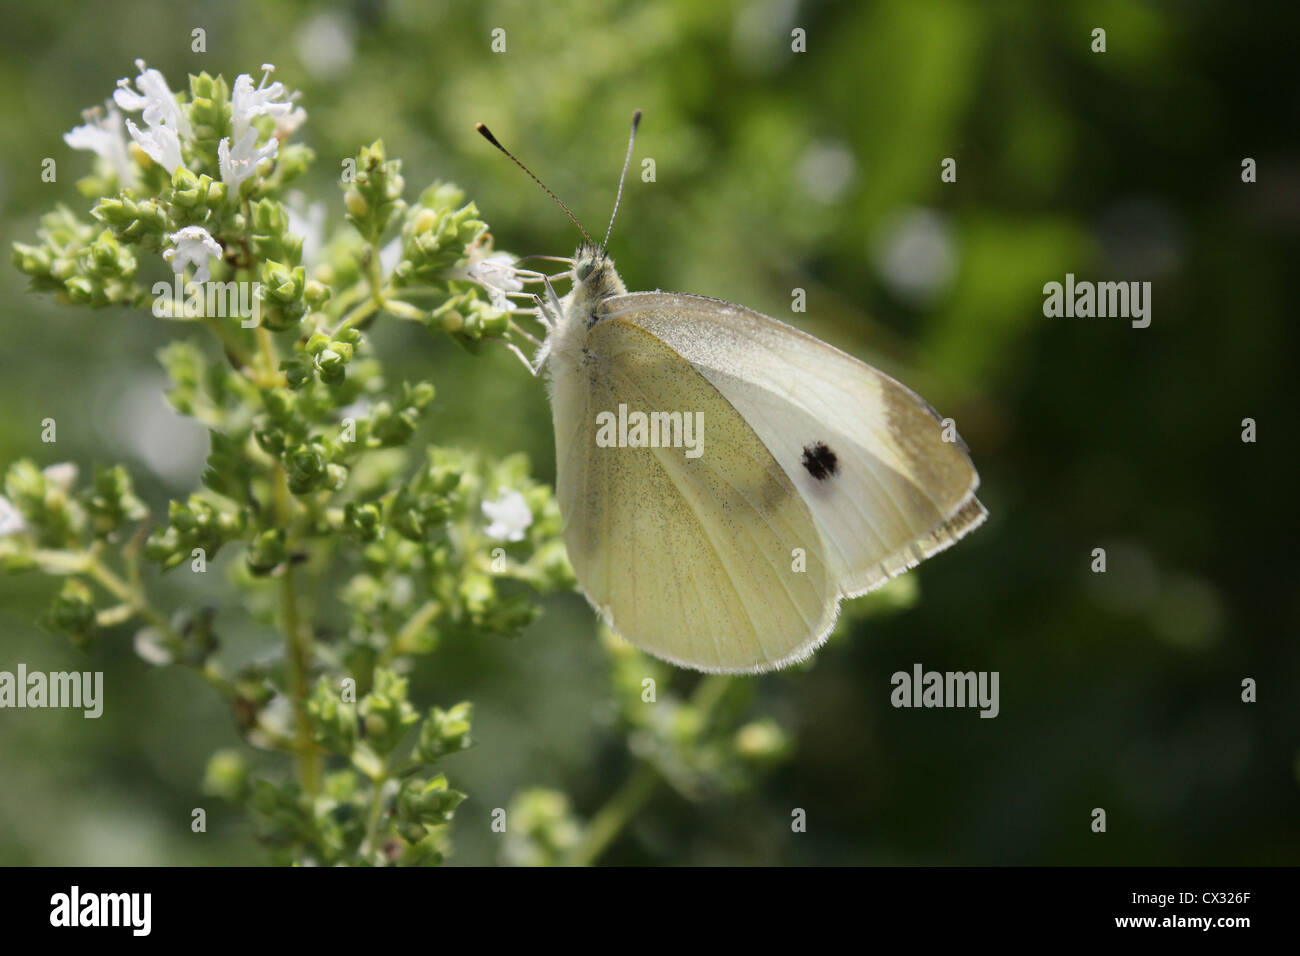 A butterfly feeding on flowers. - Stock Image